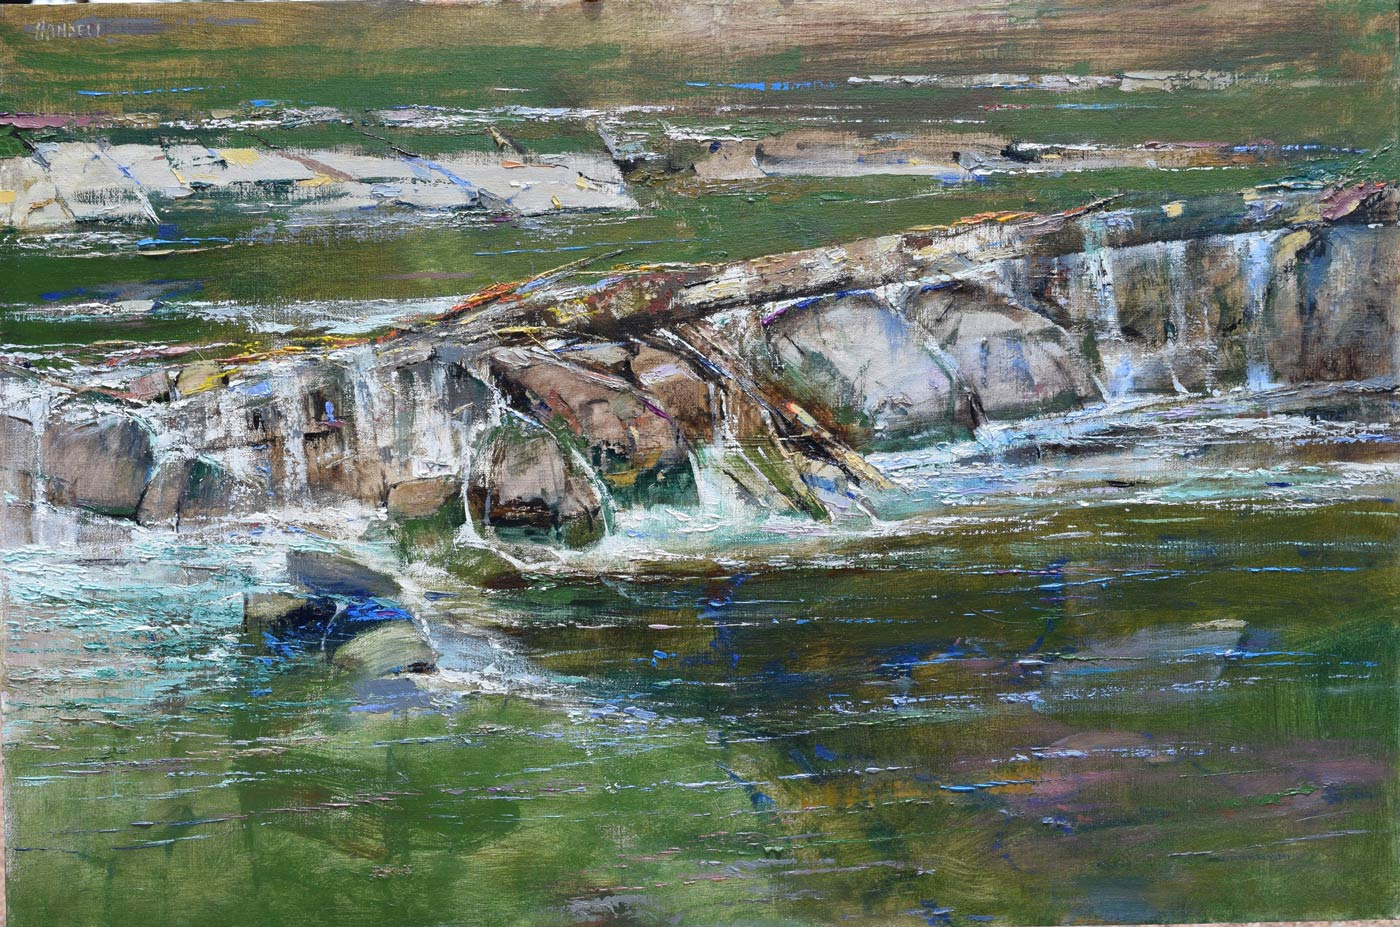 Handell_-AT-RIVER'S-EDGE_high-res_oil-24×36-$18,500_MEDIUM-RES